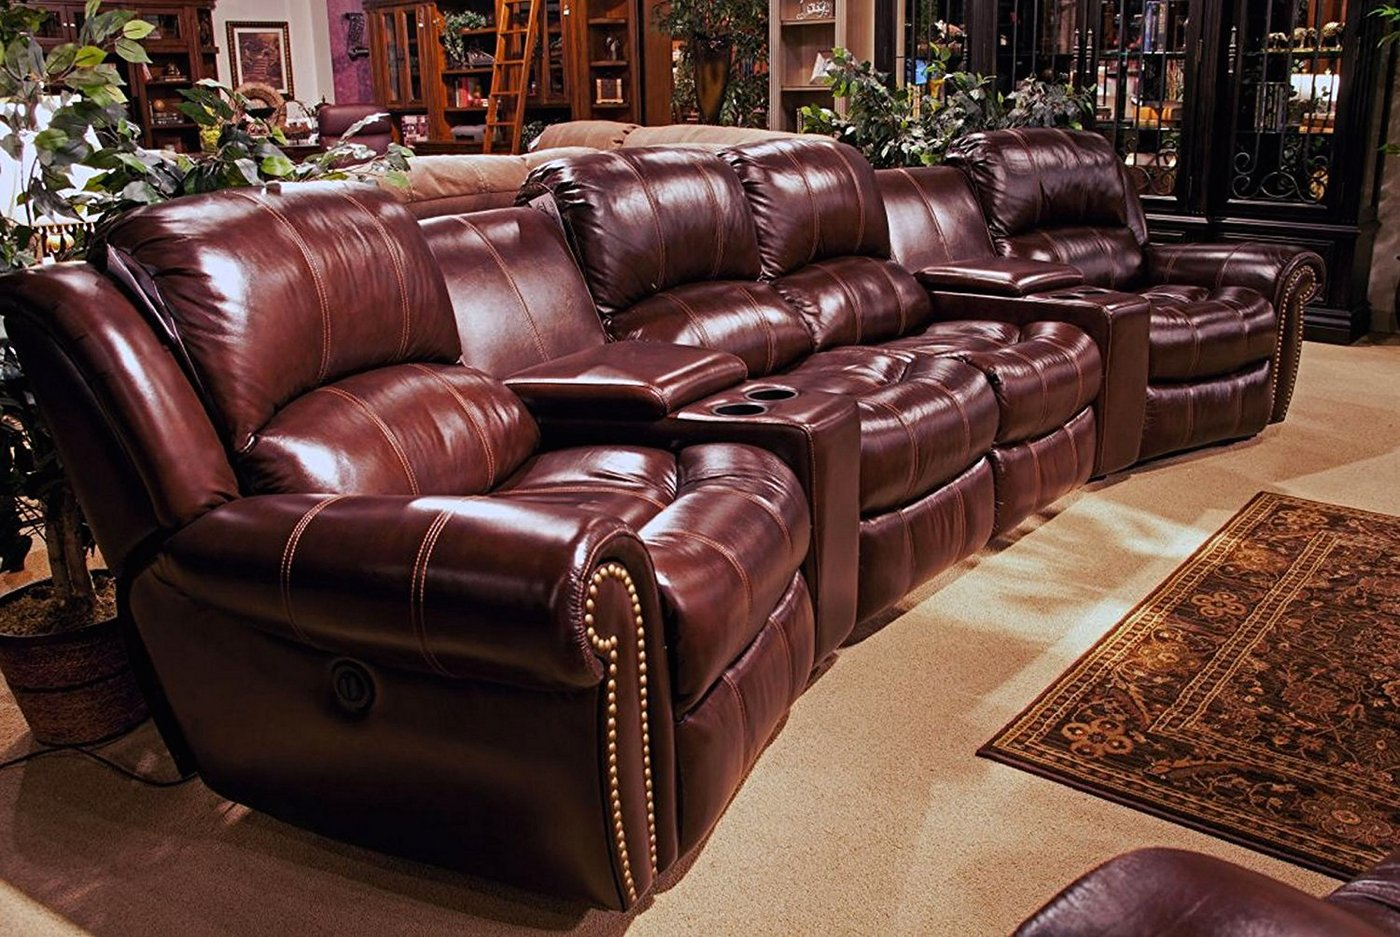 Stylish Recliner Parker Living Poseidon Cocoa Brown Leather Theater Style